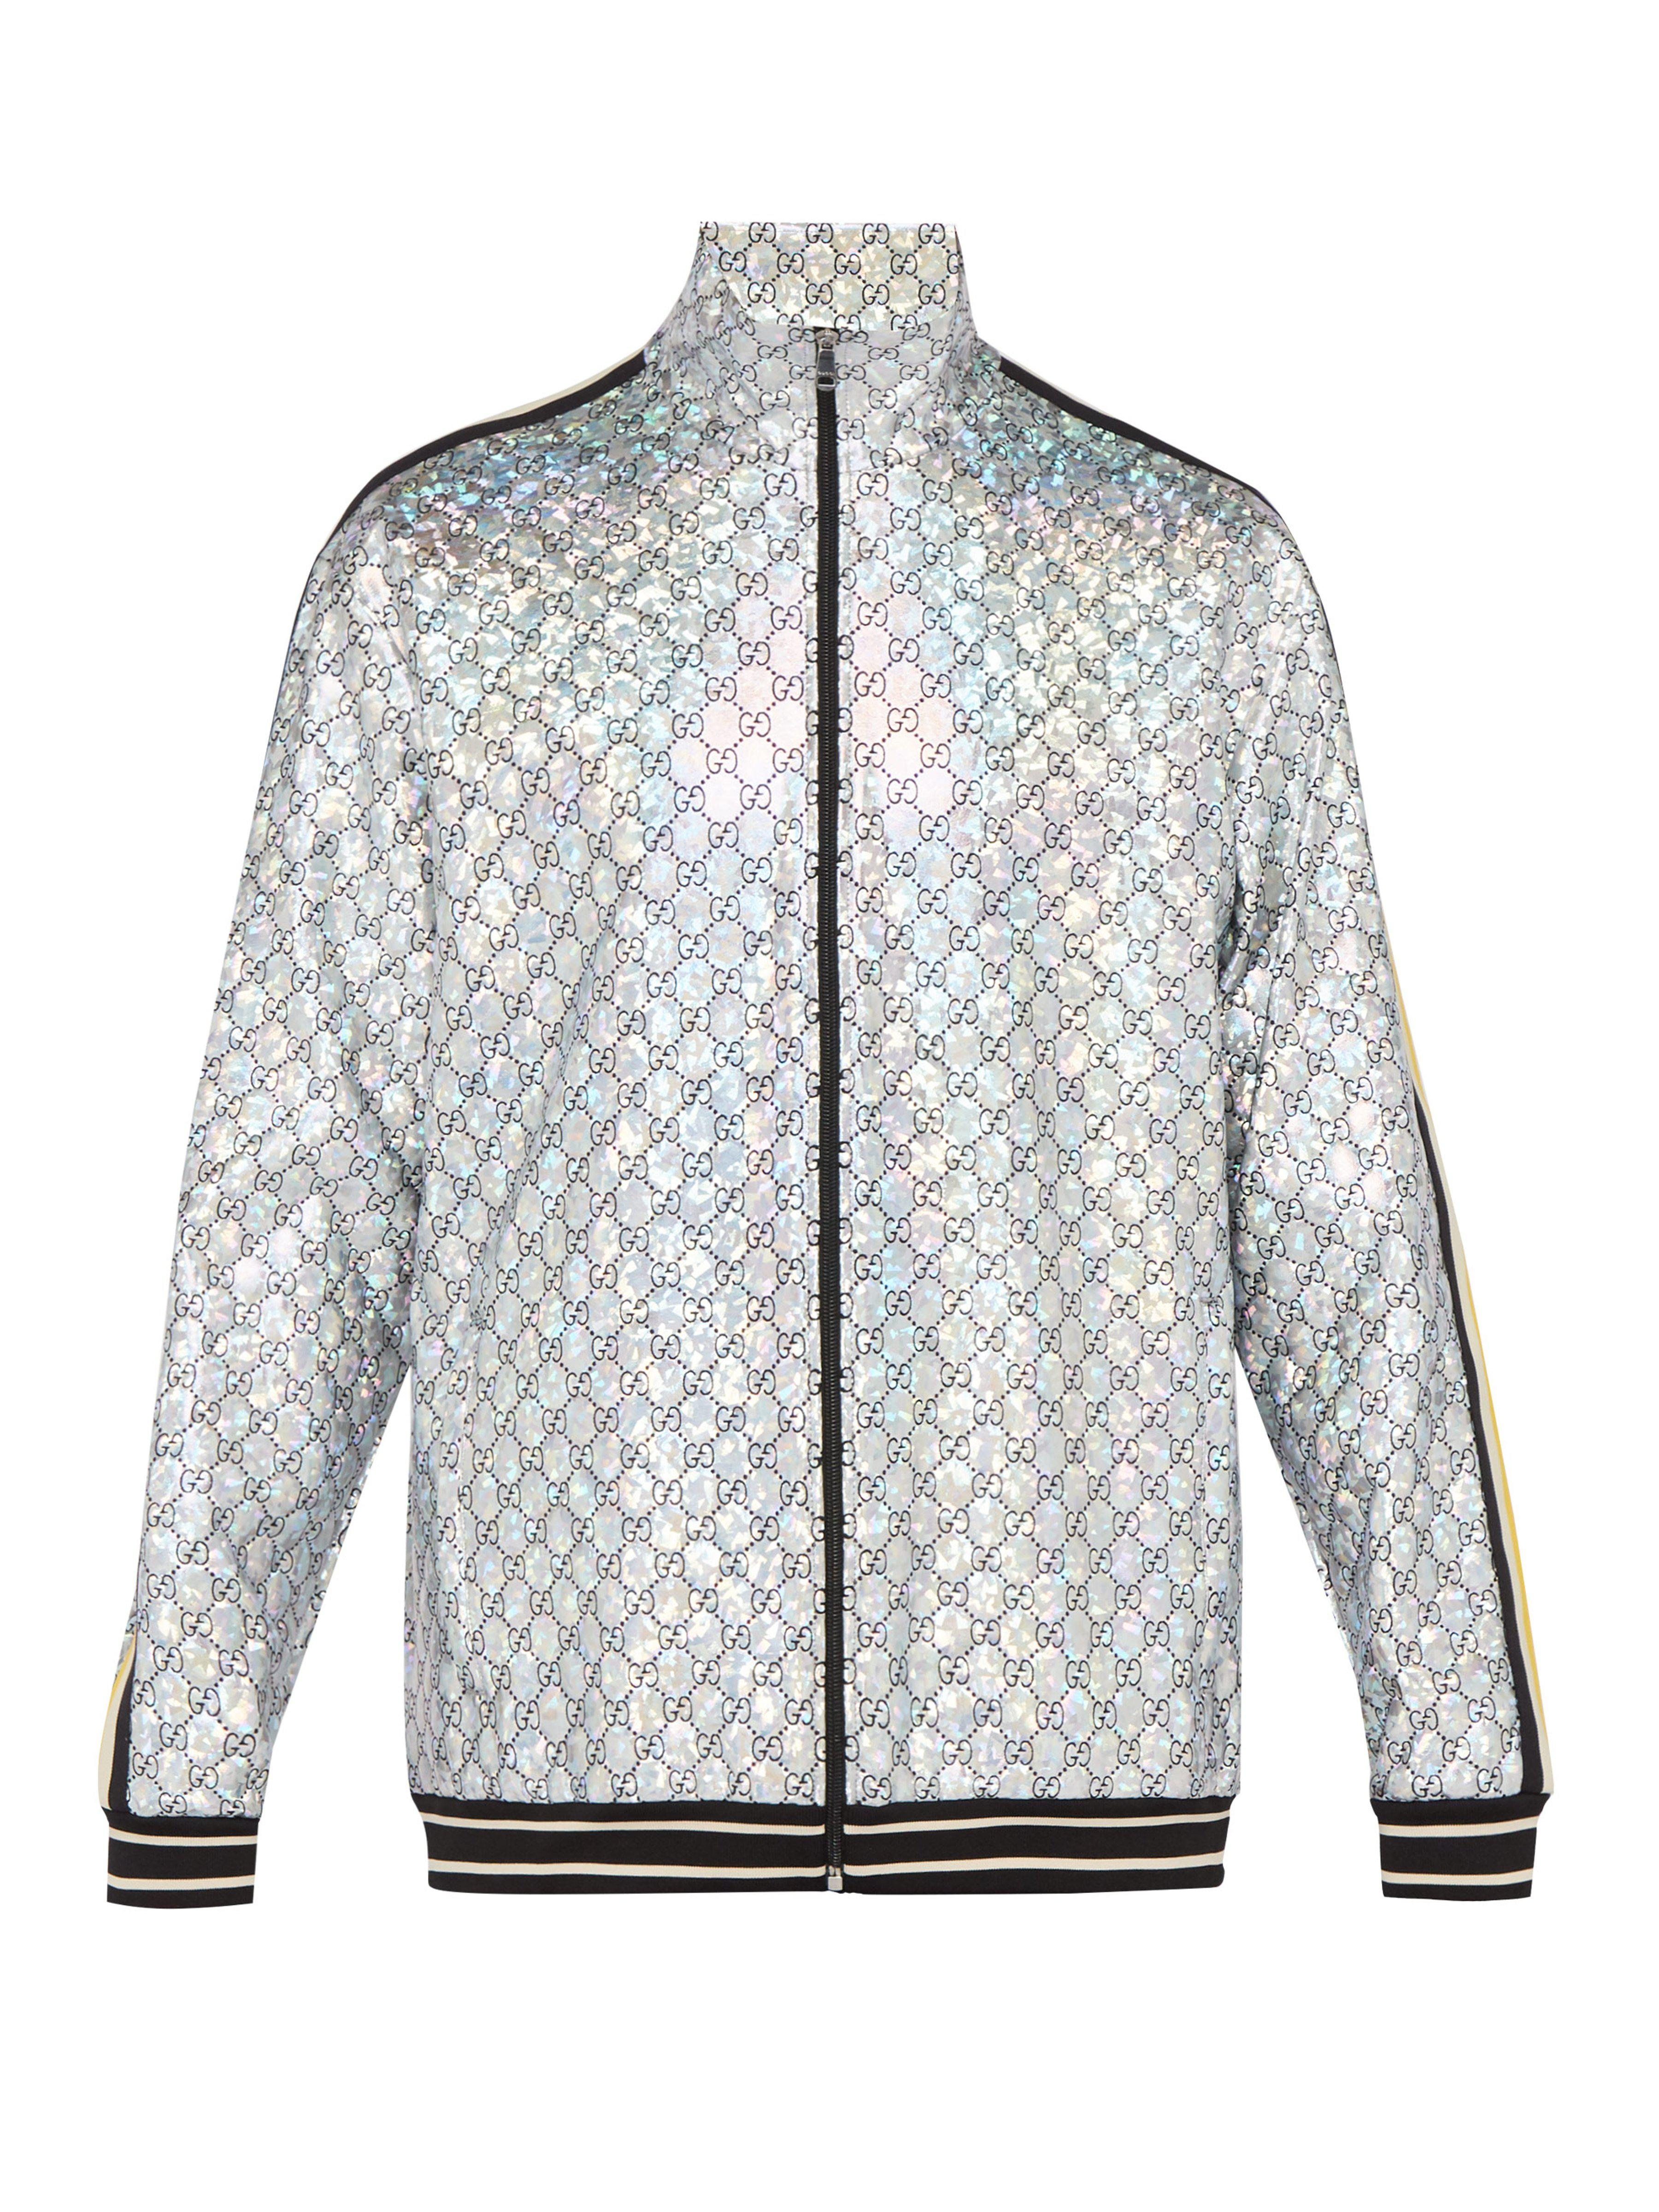 a84daabdd48 Gucci Gg Stretch Jersey Track Jacket in Metallic for Men - Lyst